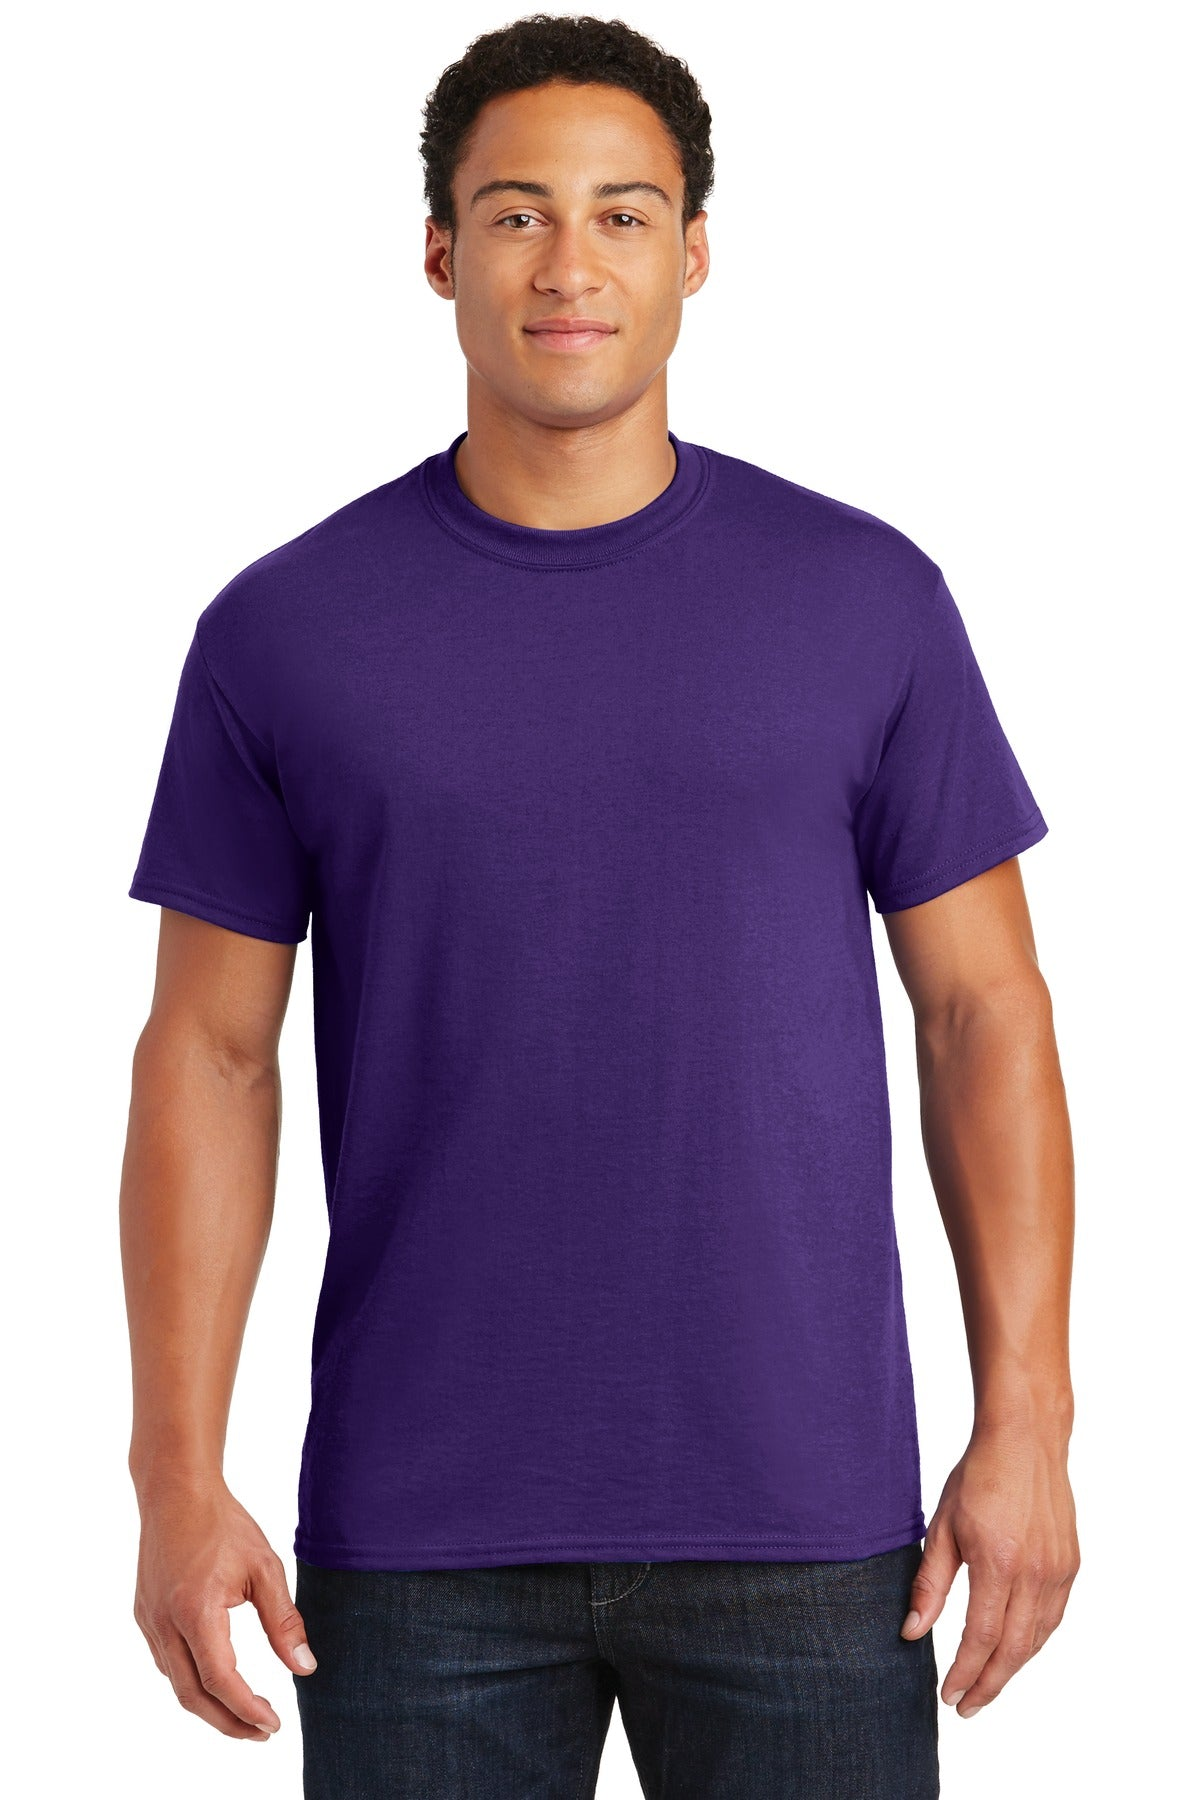 Purple Gildan DryBlend 50 Cotton/50 Poly T-Shirt.